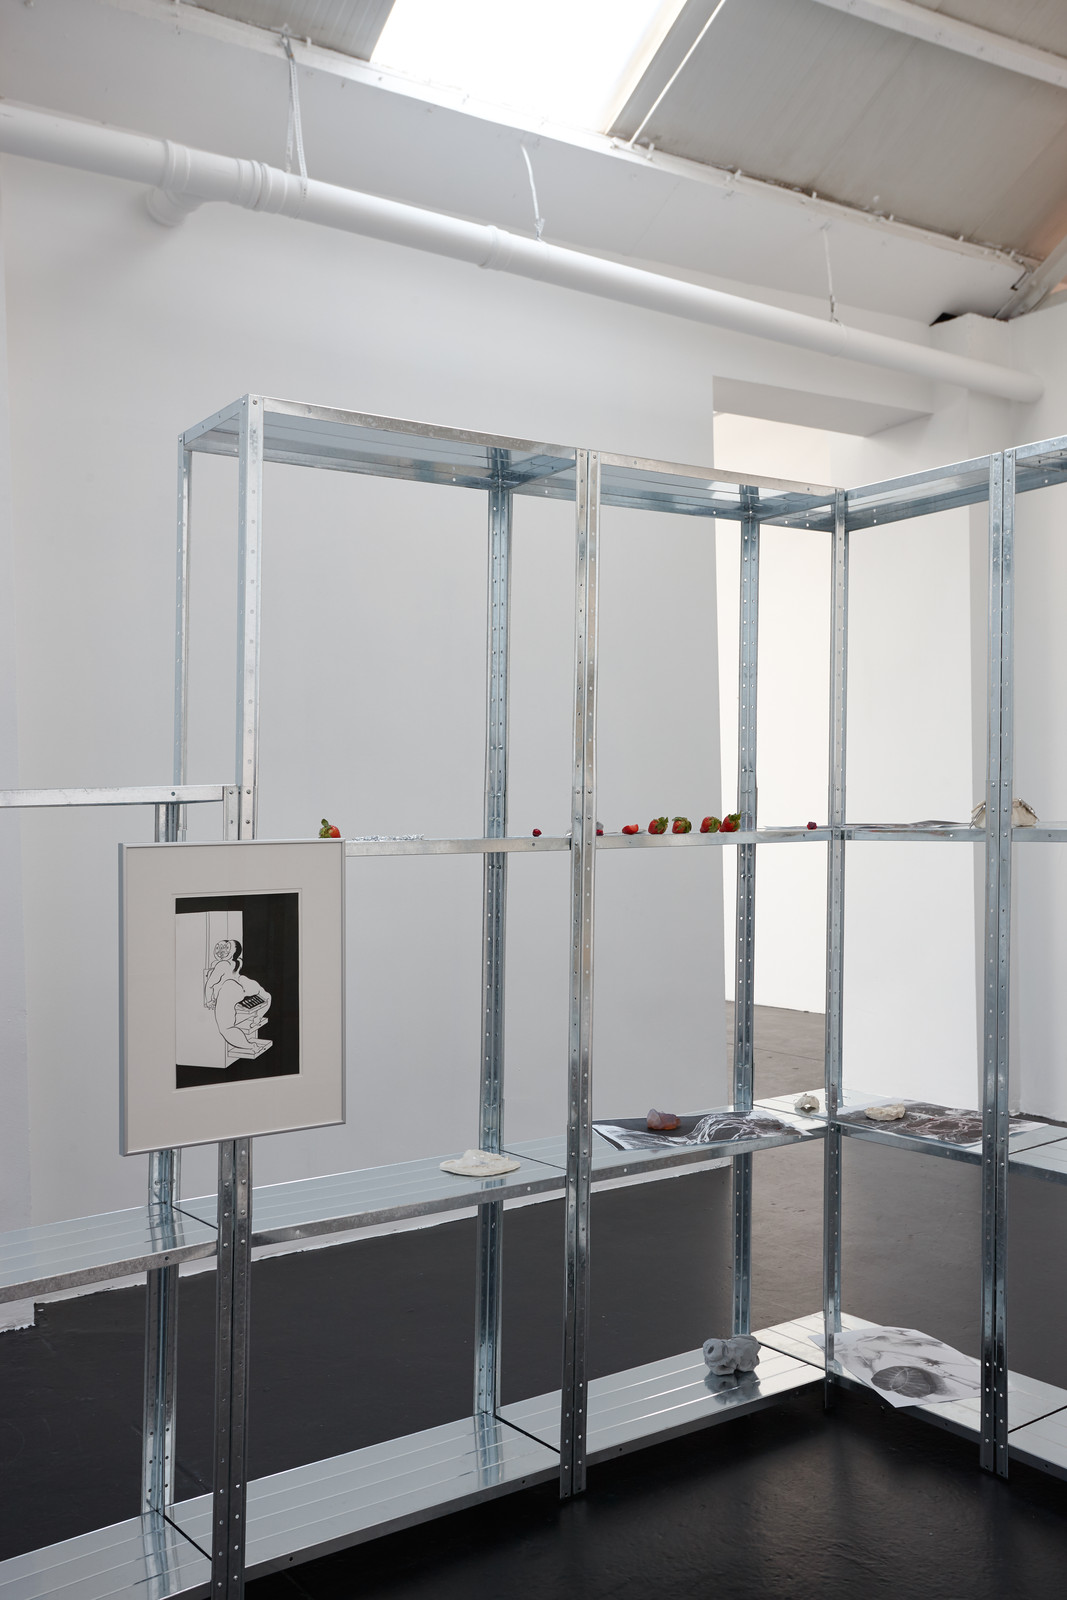 Protean Vessel(S) - Installation View VII